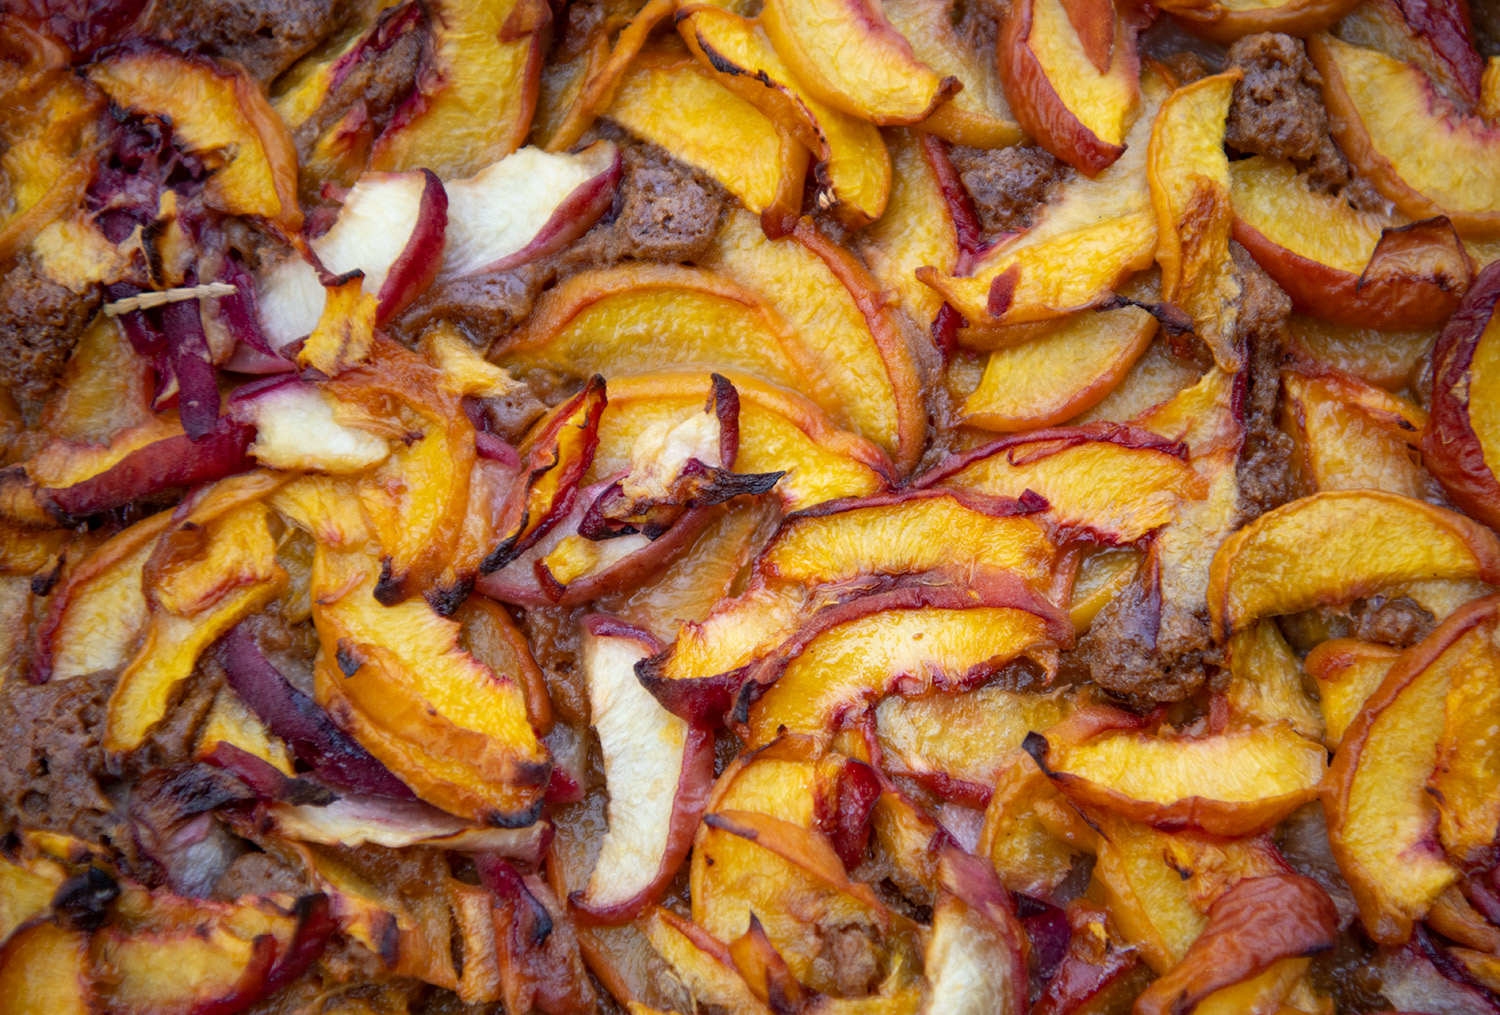 Peach Cobbler close-up